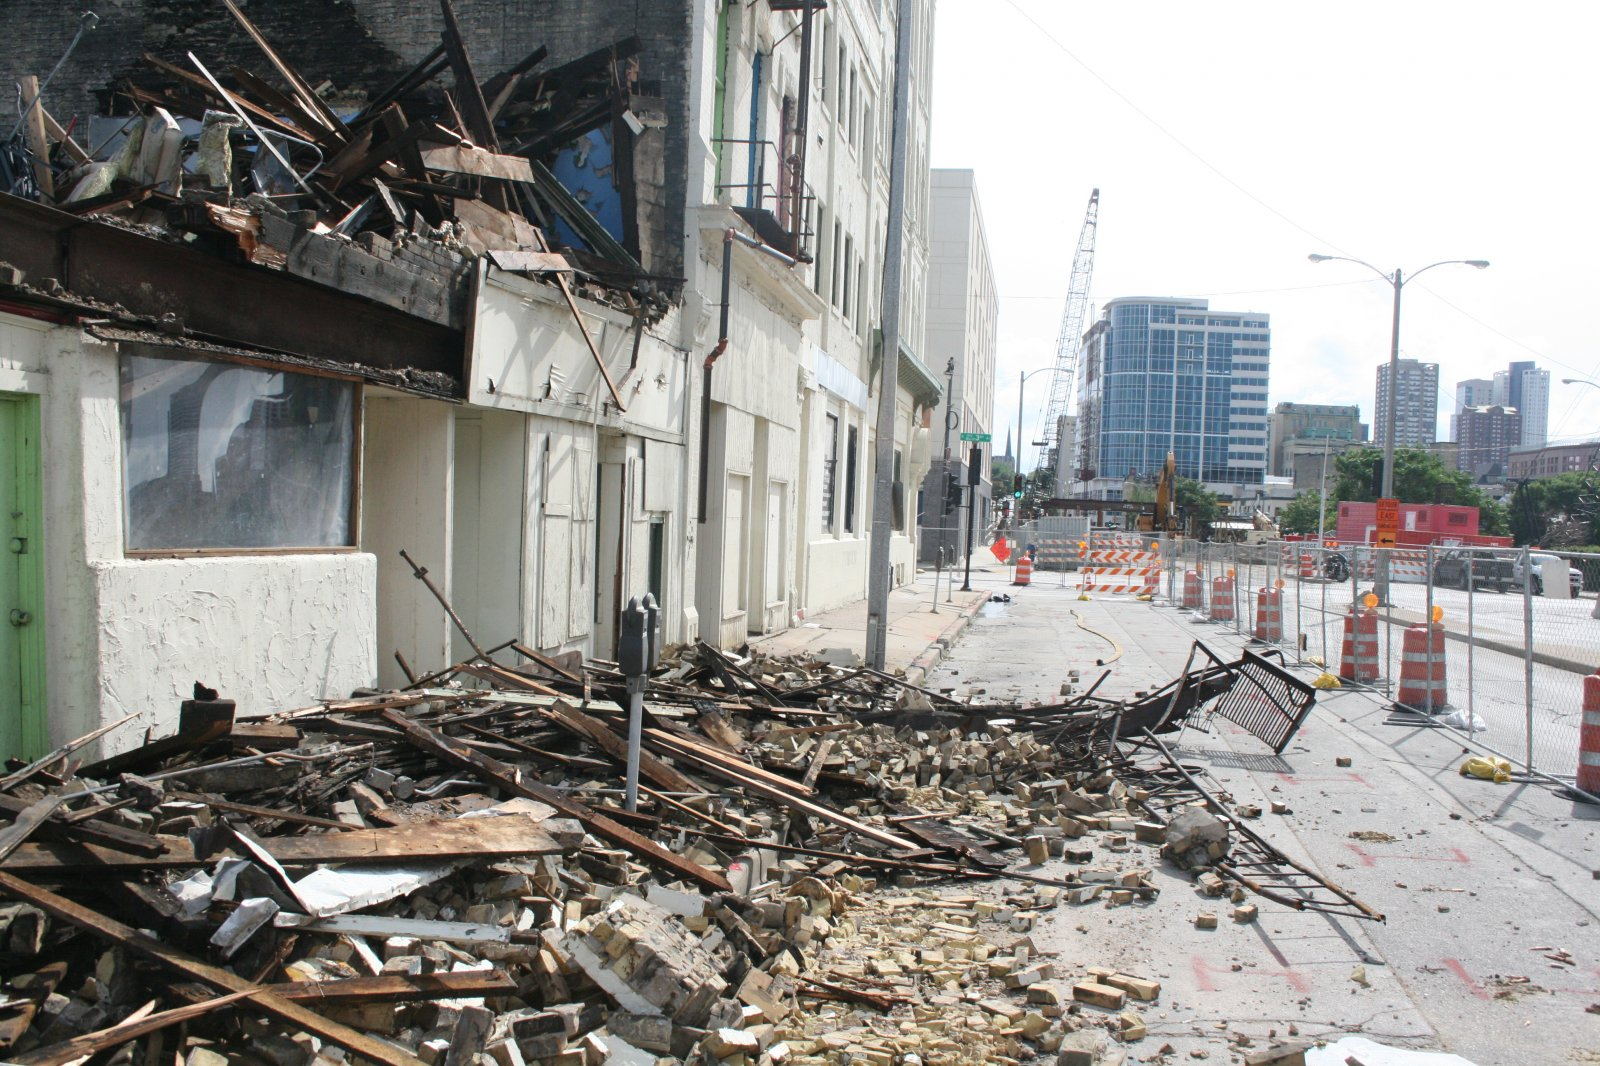 Demolition of the Sydney Hih.